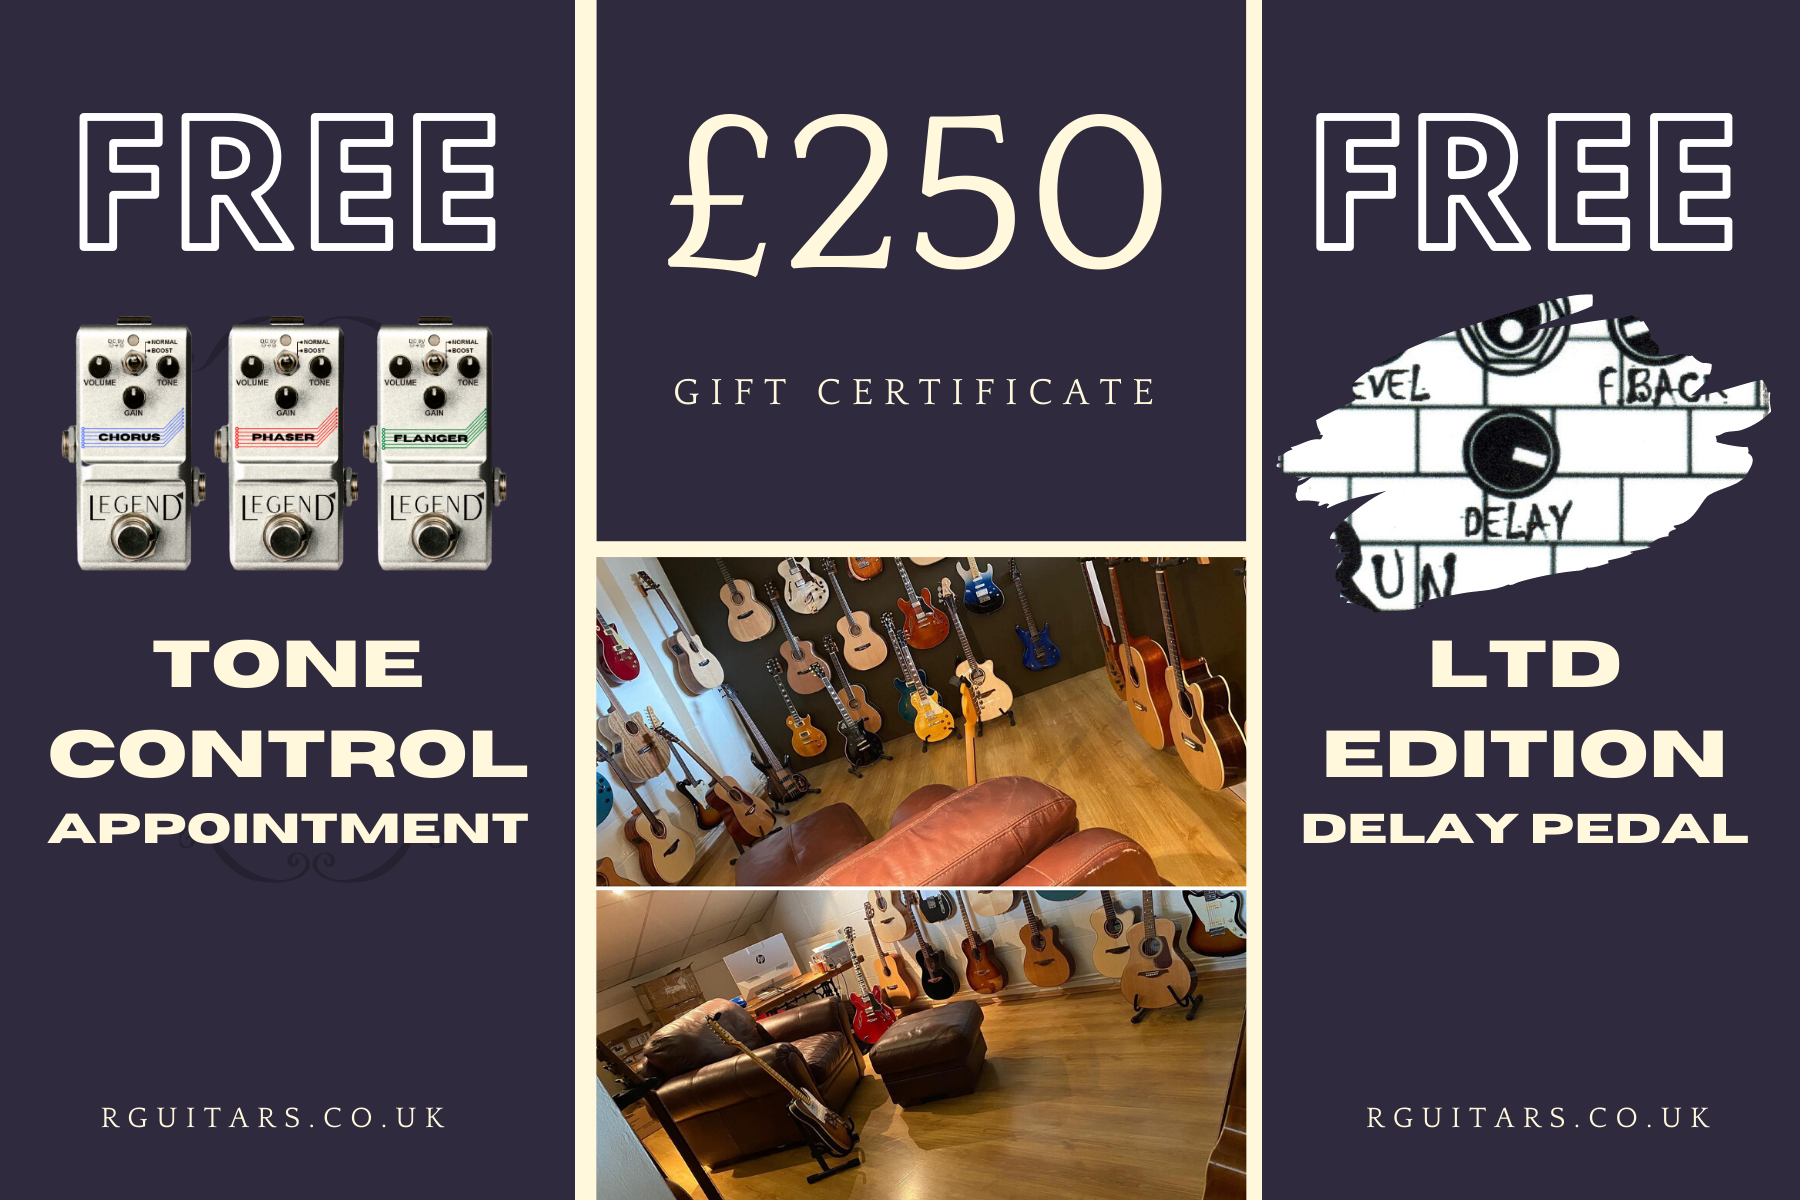 £250 Rguitars.co.uk Vouchers Now Available.  First 50 Receive INCREDIBLE FREE GIFT (£50 Ltd Edition Delay Pedal)